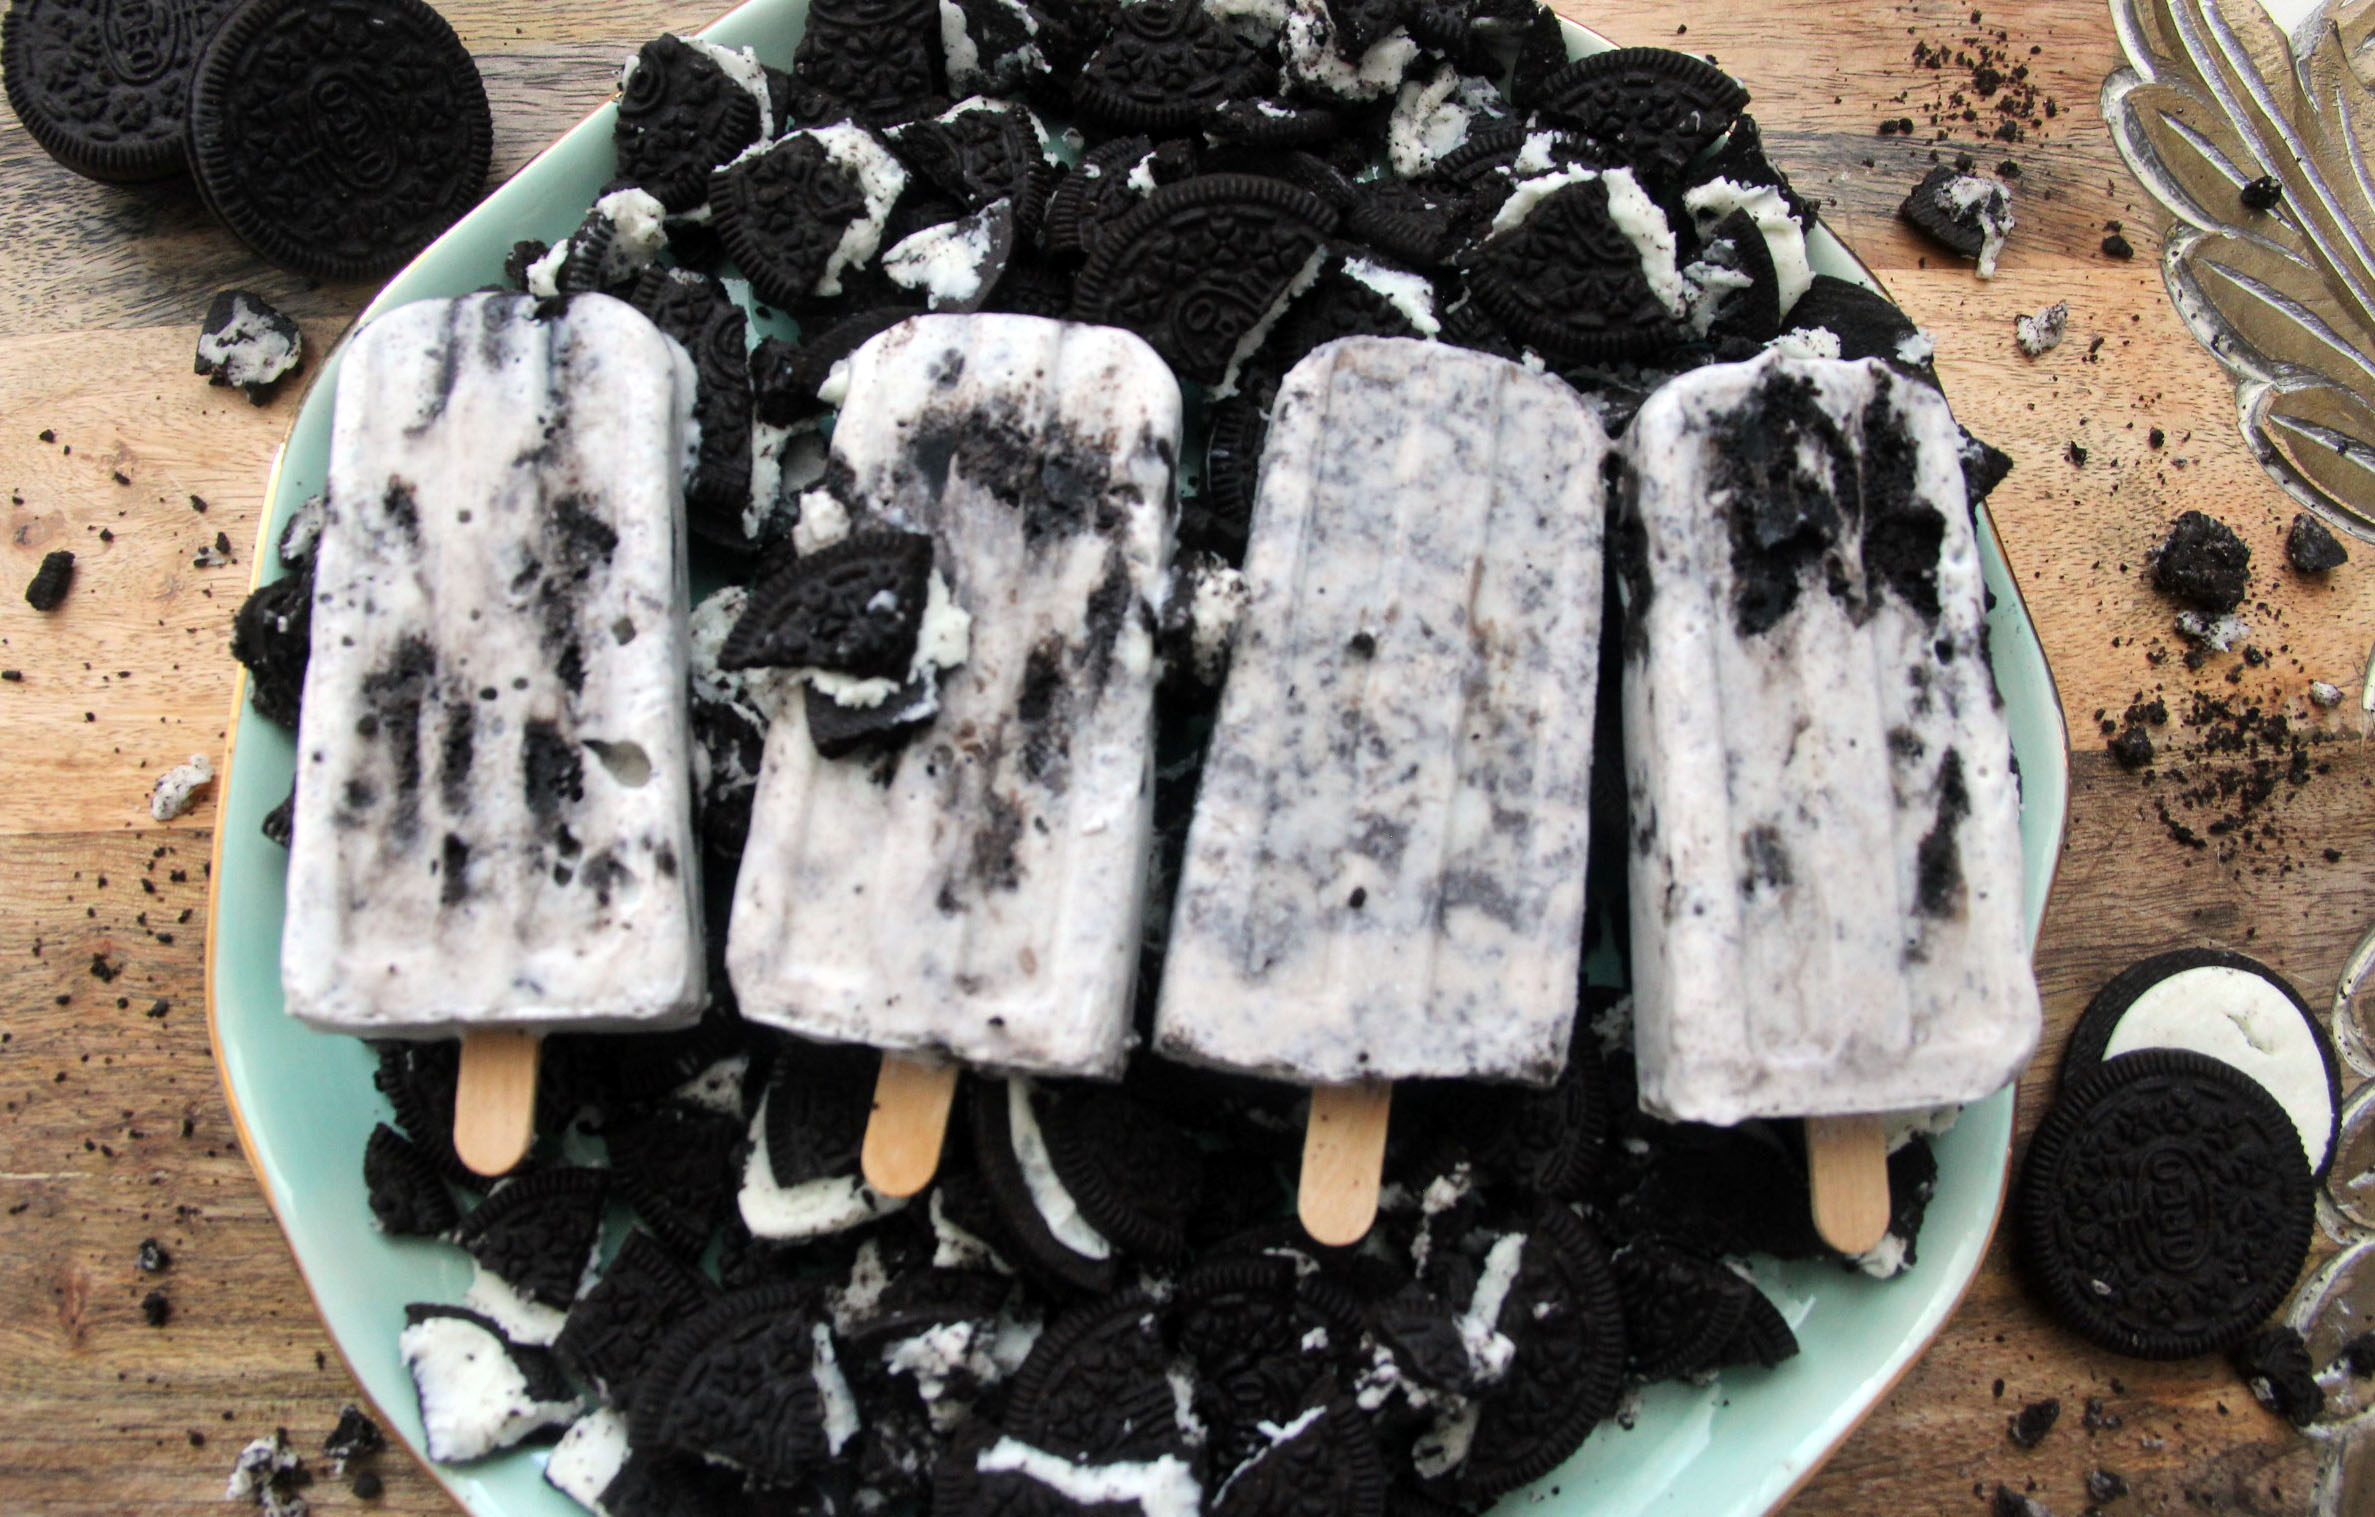 I've decided to take my Oreo-cookie obsession to the next level: Introducing Oreo Cookie Pops!